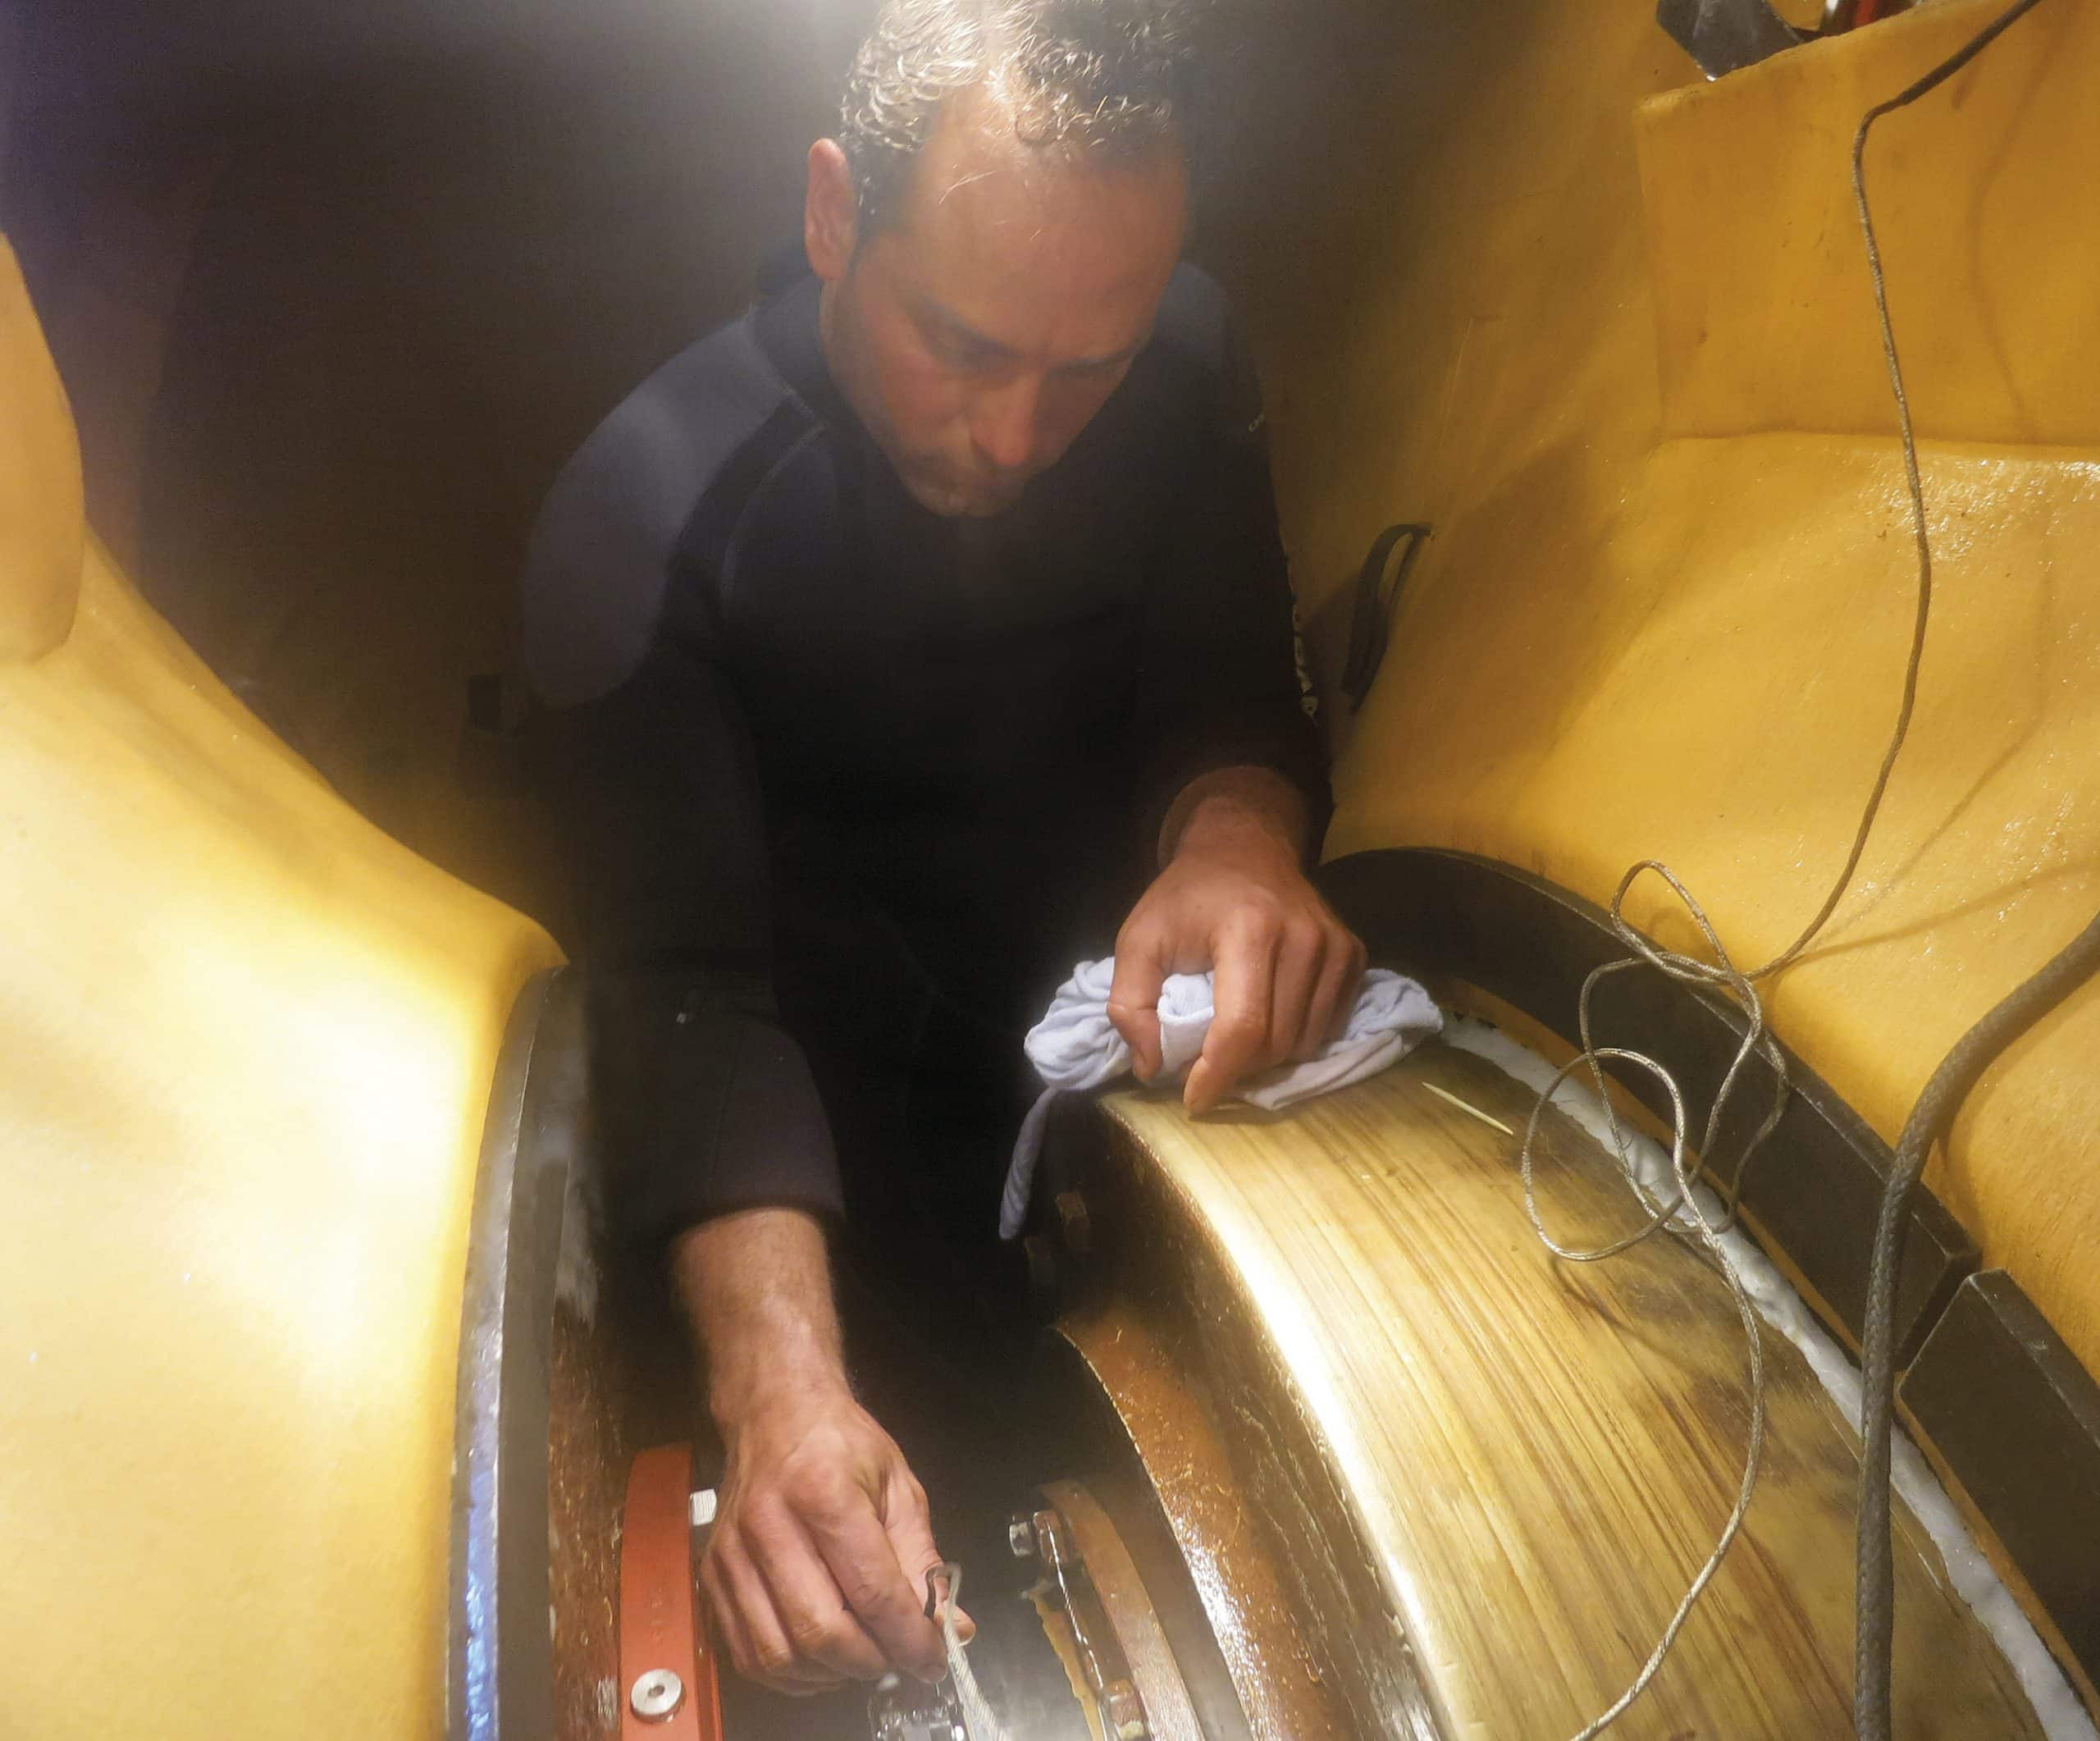 Hydrex diver working on the assembly inside the flexible mobdock.